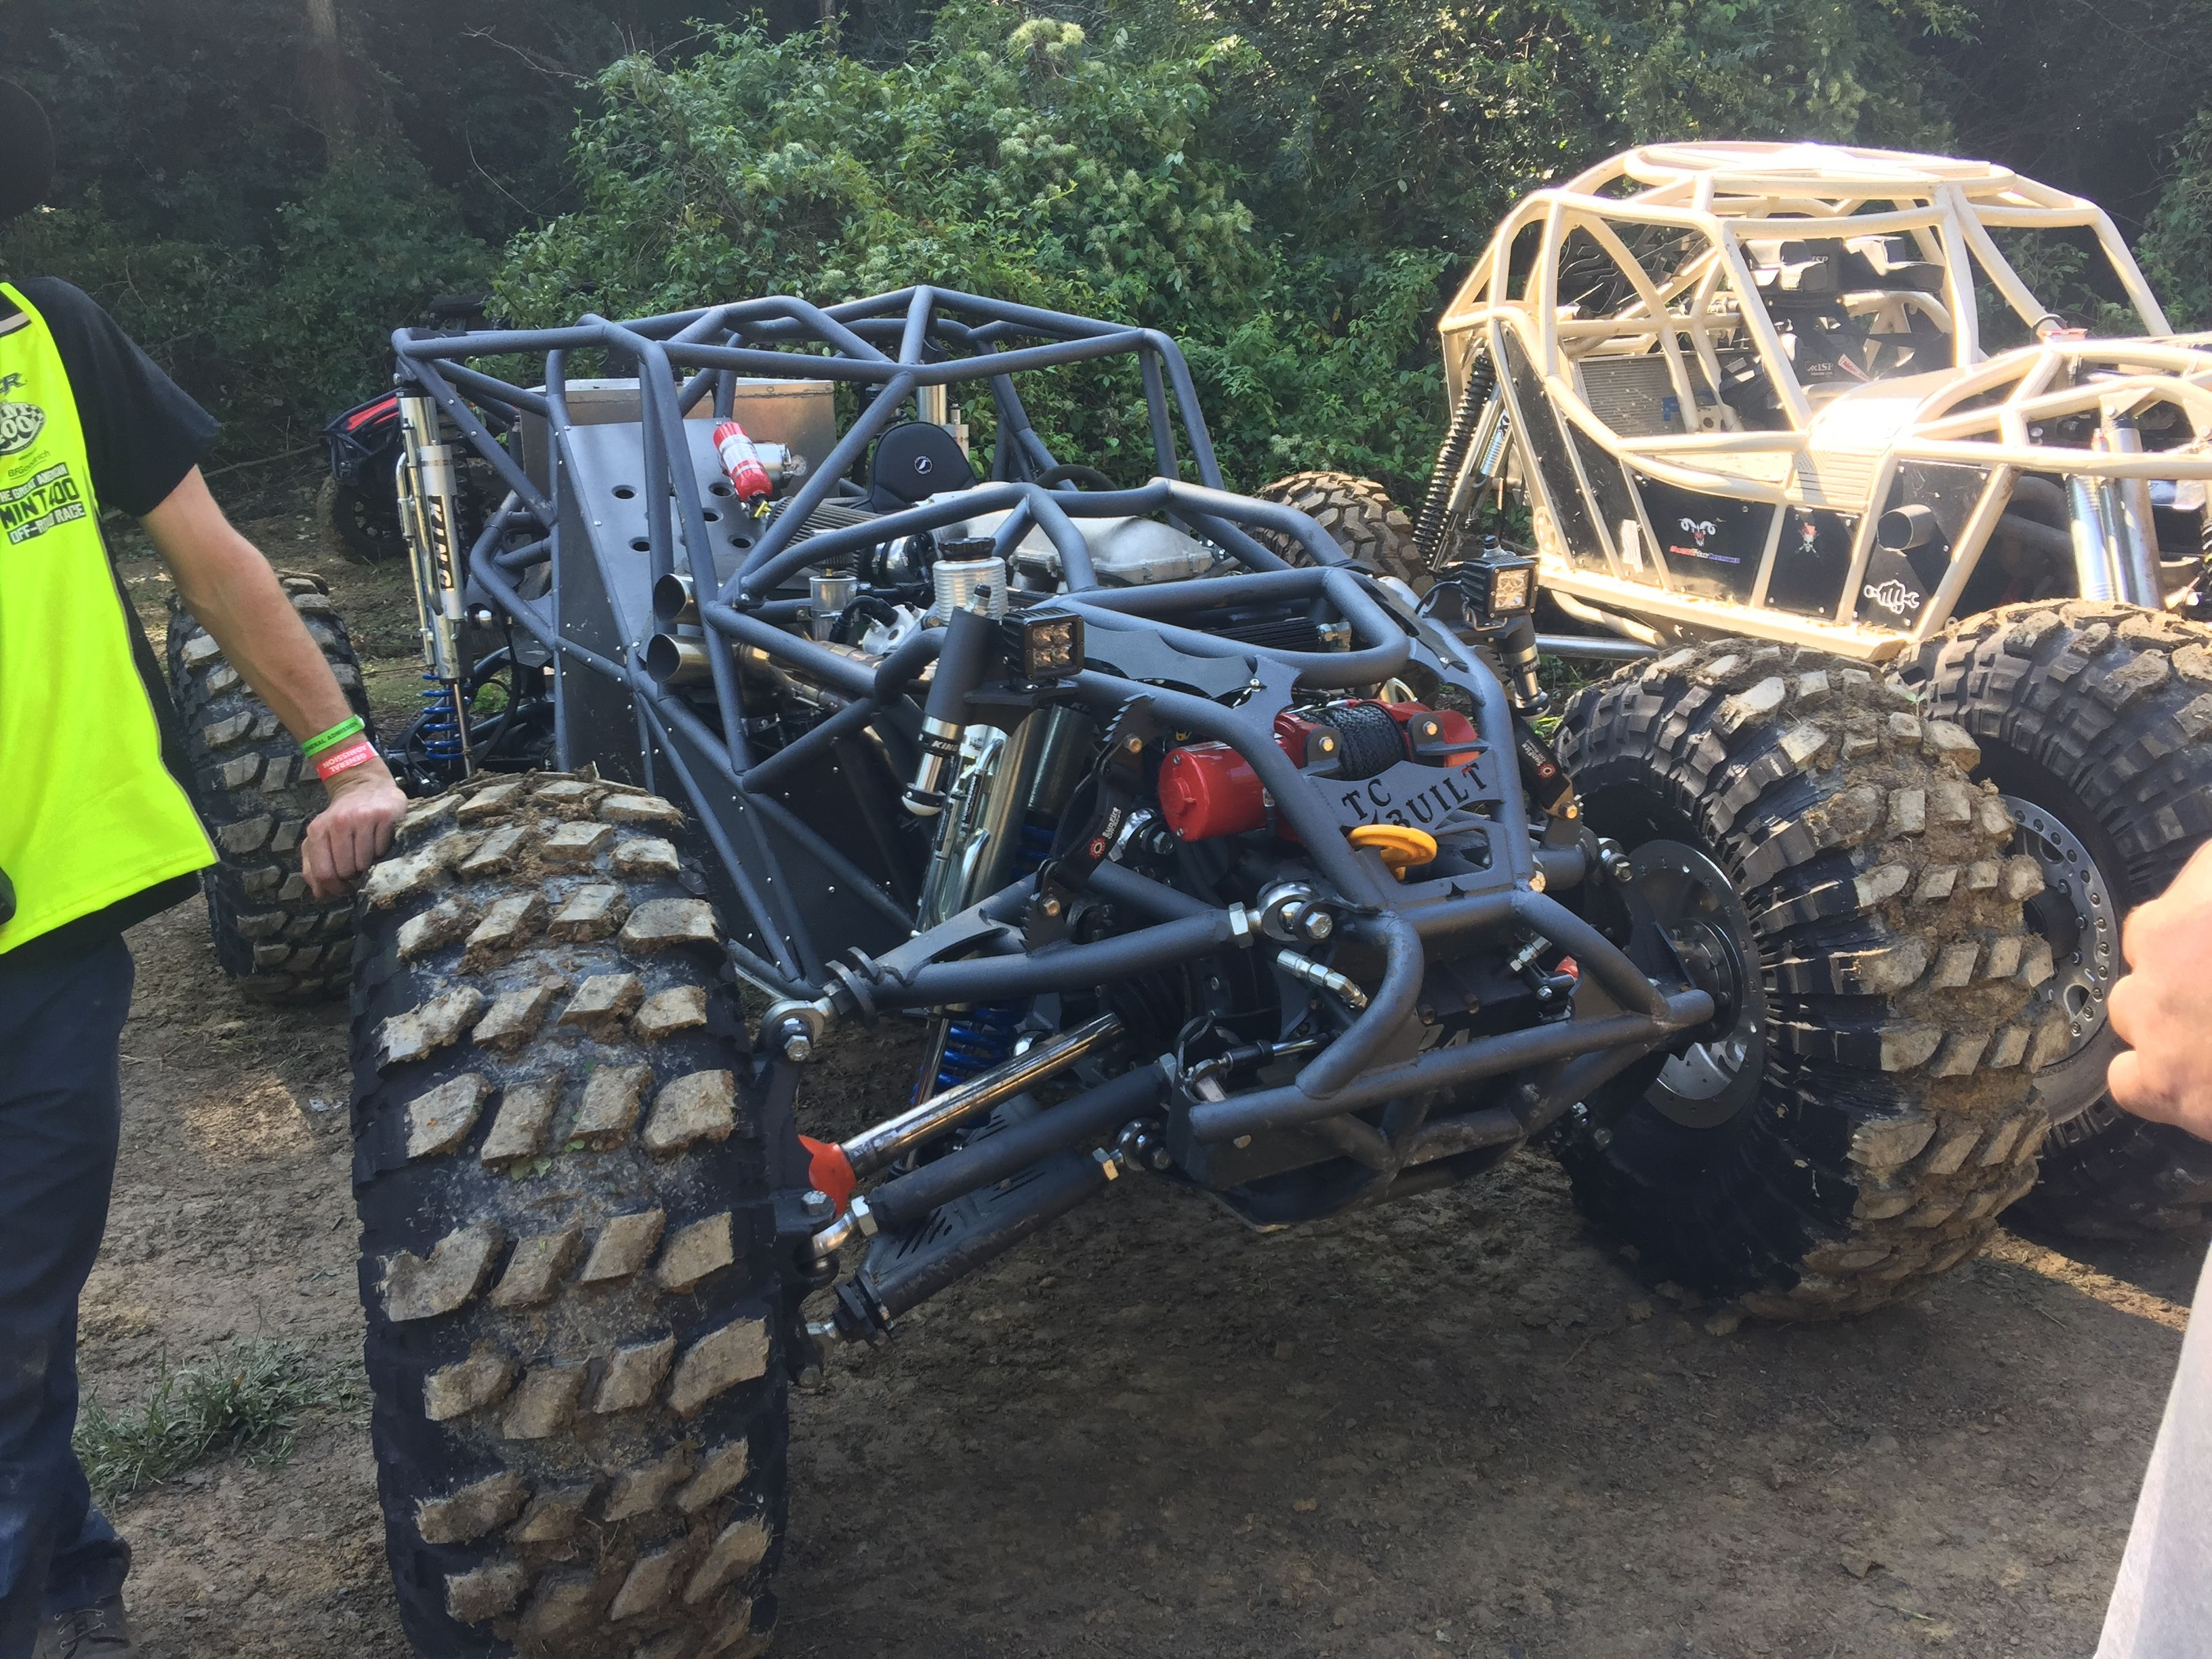 Rock Bouncer Cars Rockcrawling and cool Rides